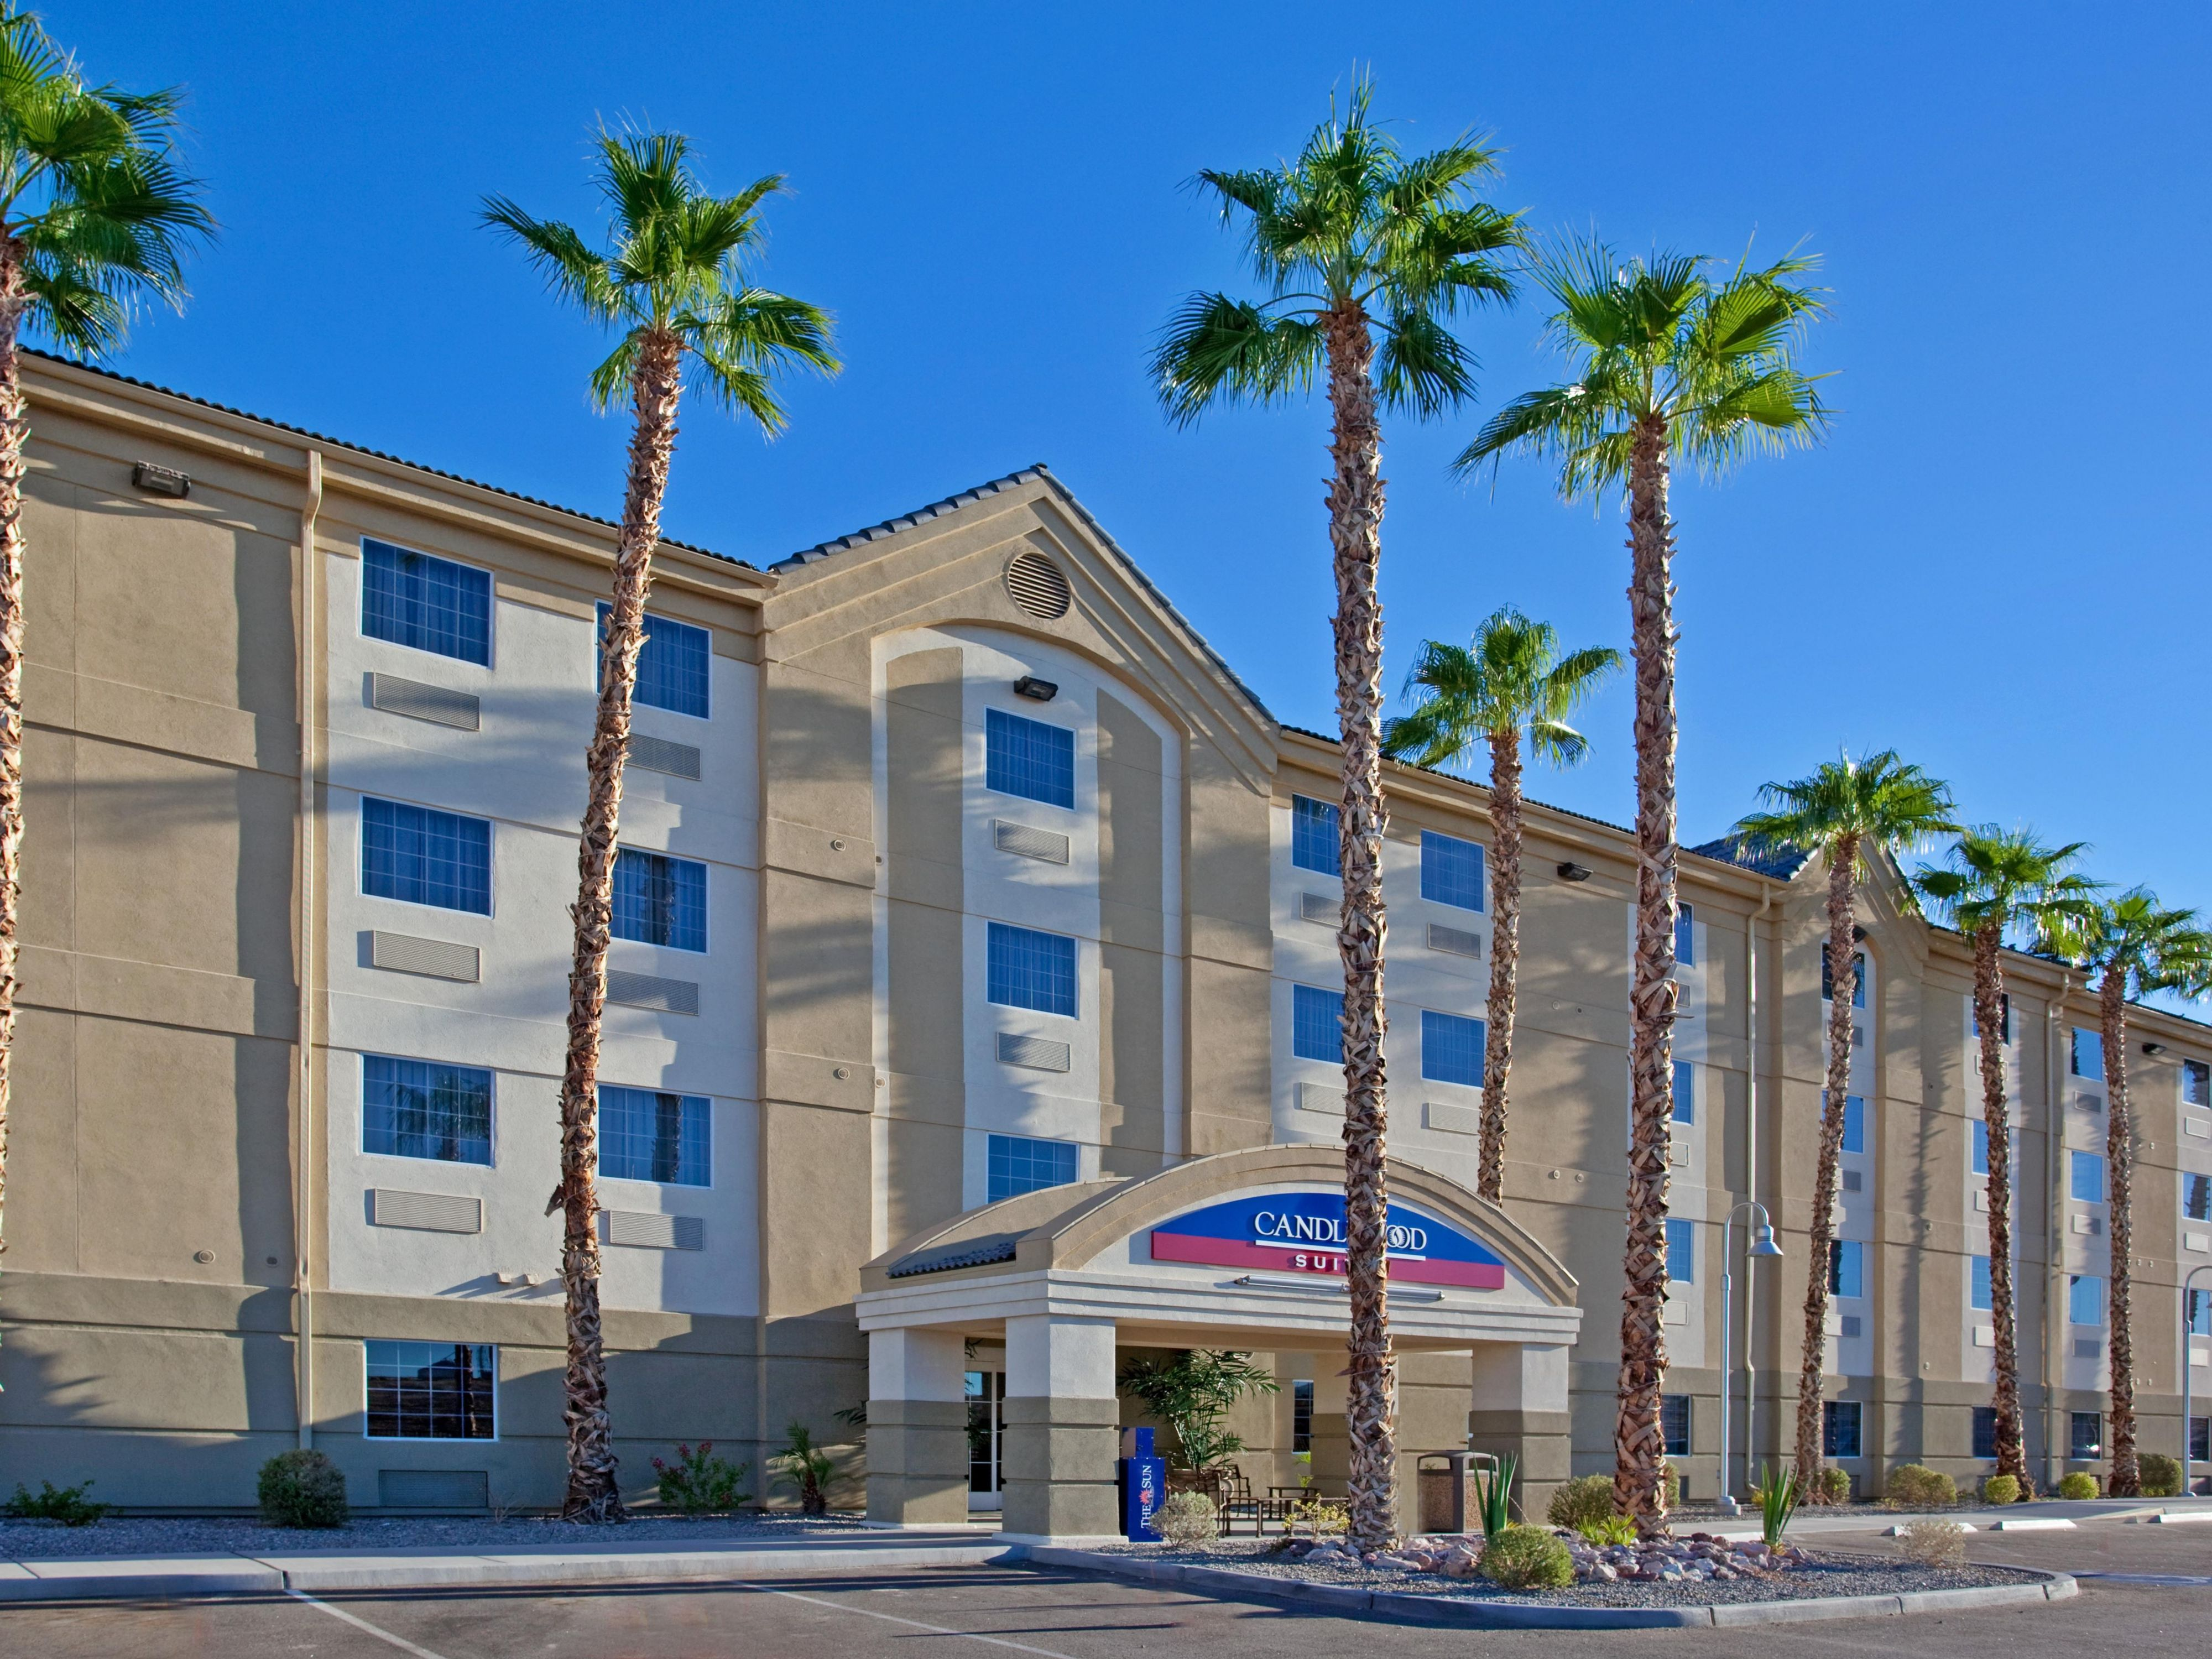 Candlewood Suites Yuma Extended Stay Hotel In Yuma Arizona